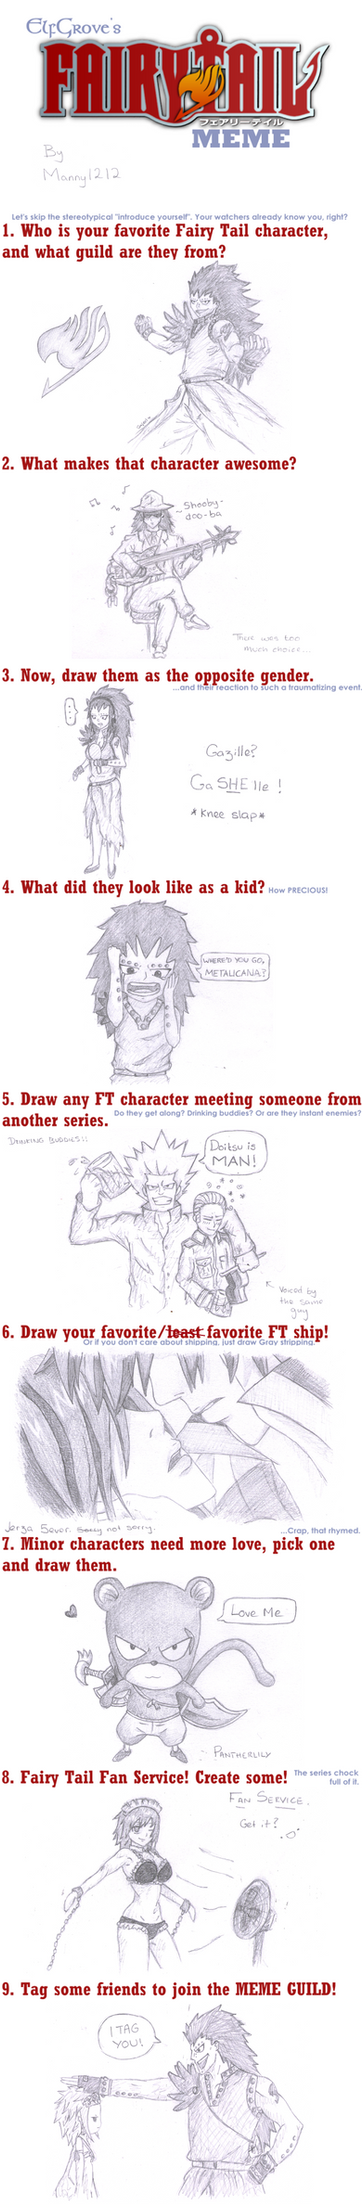 Fairy Tail Meme by manny1212